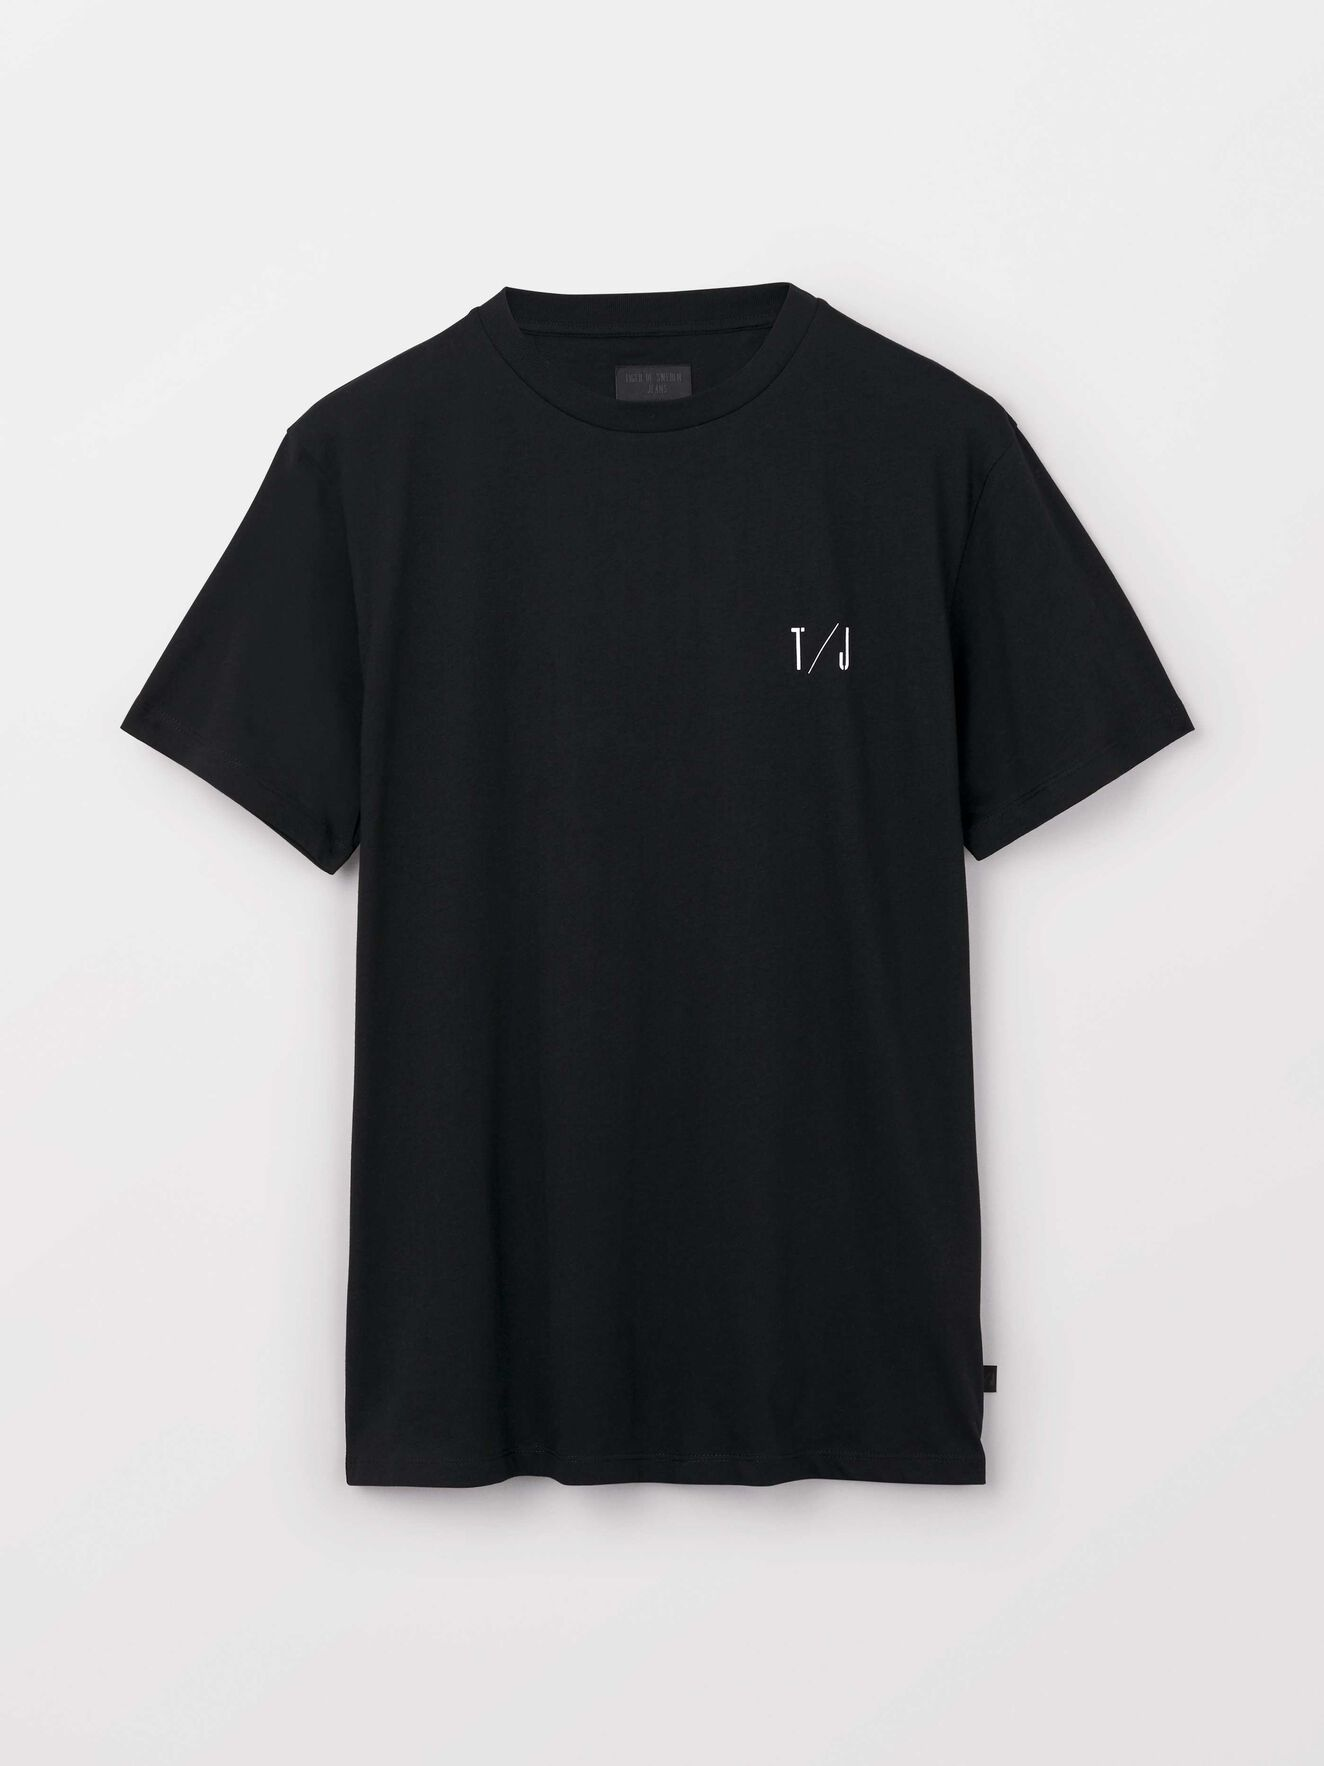 Fleek T-Shirt in Black from Tiger of Sweden